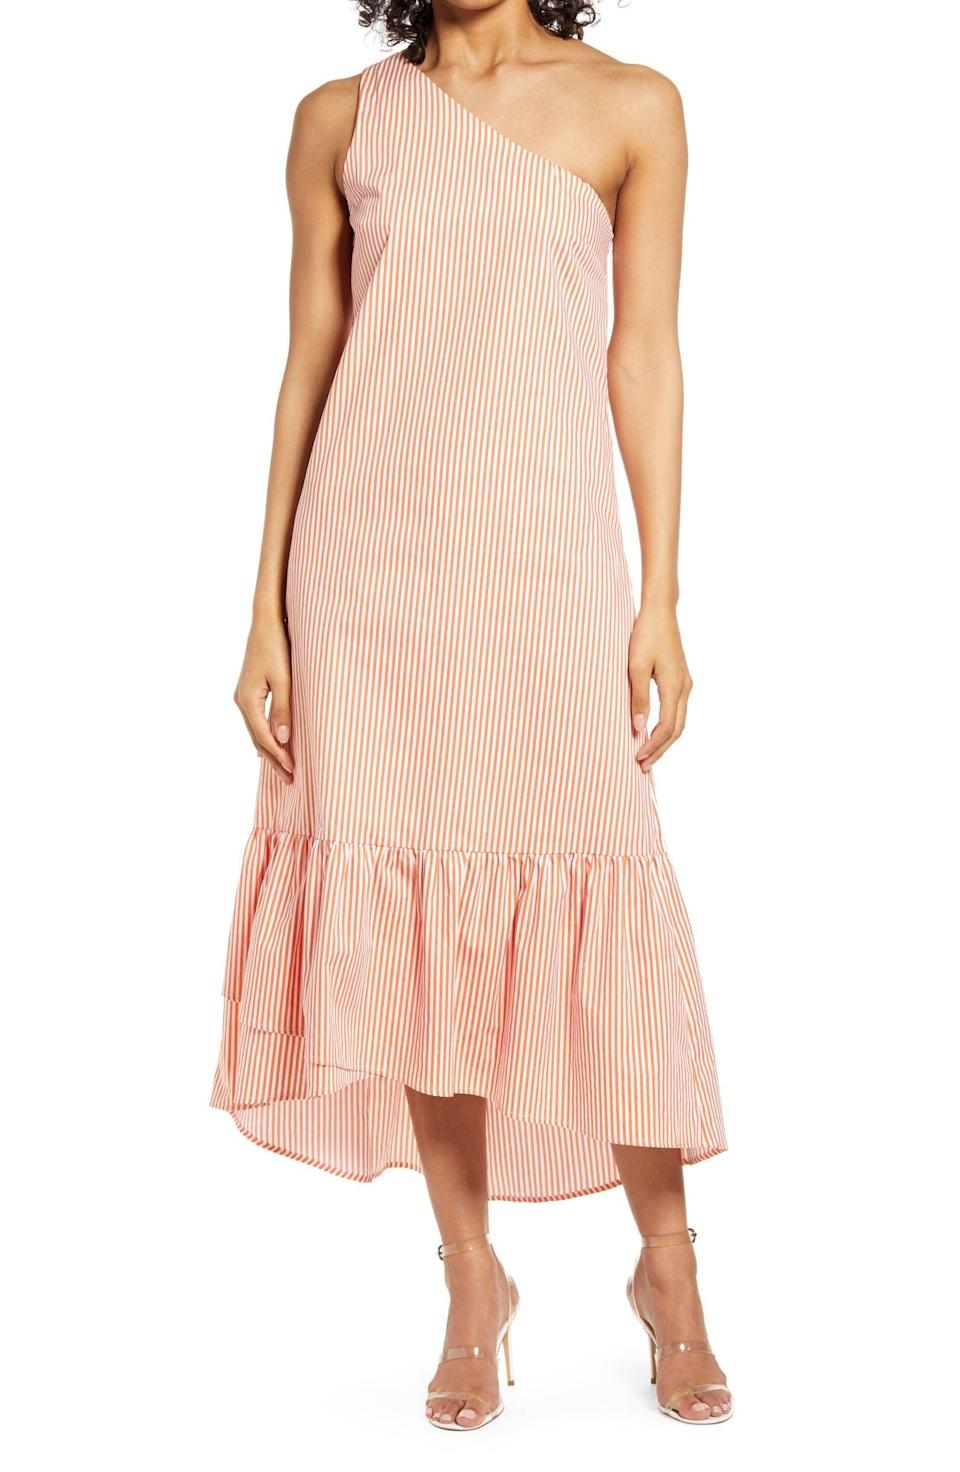 <p>This <span>Fourteenth Place Tiered One-Shoulder Dress</span> ($79) has a flattering and modern silhouette.</p>